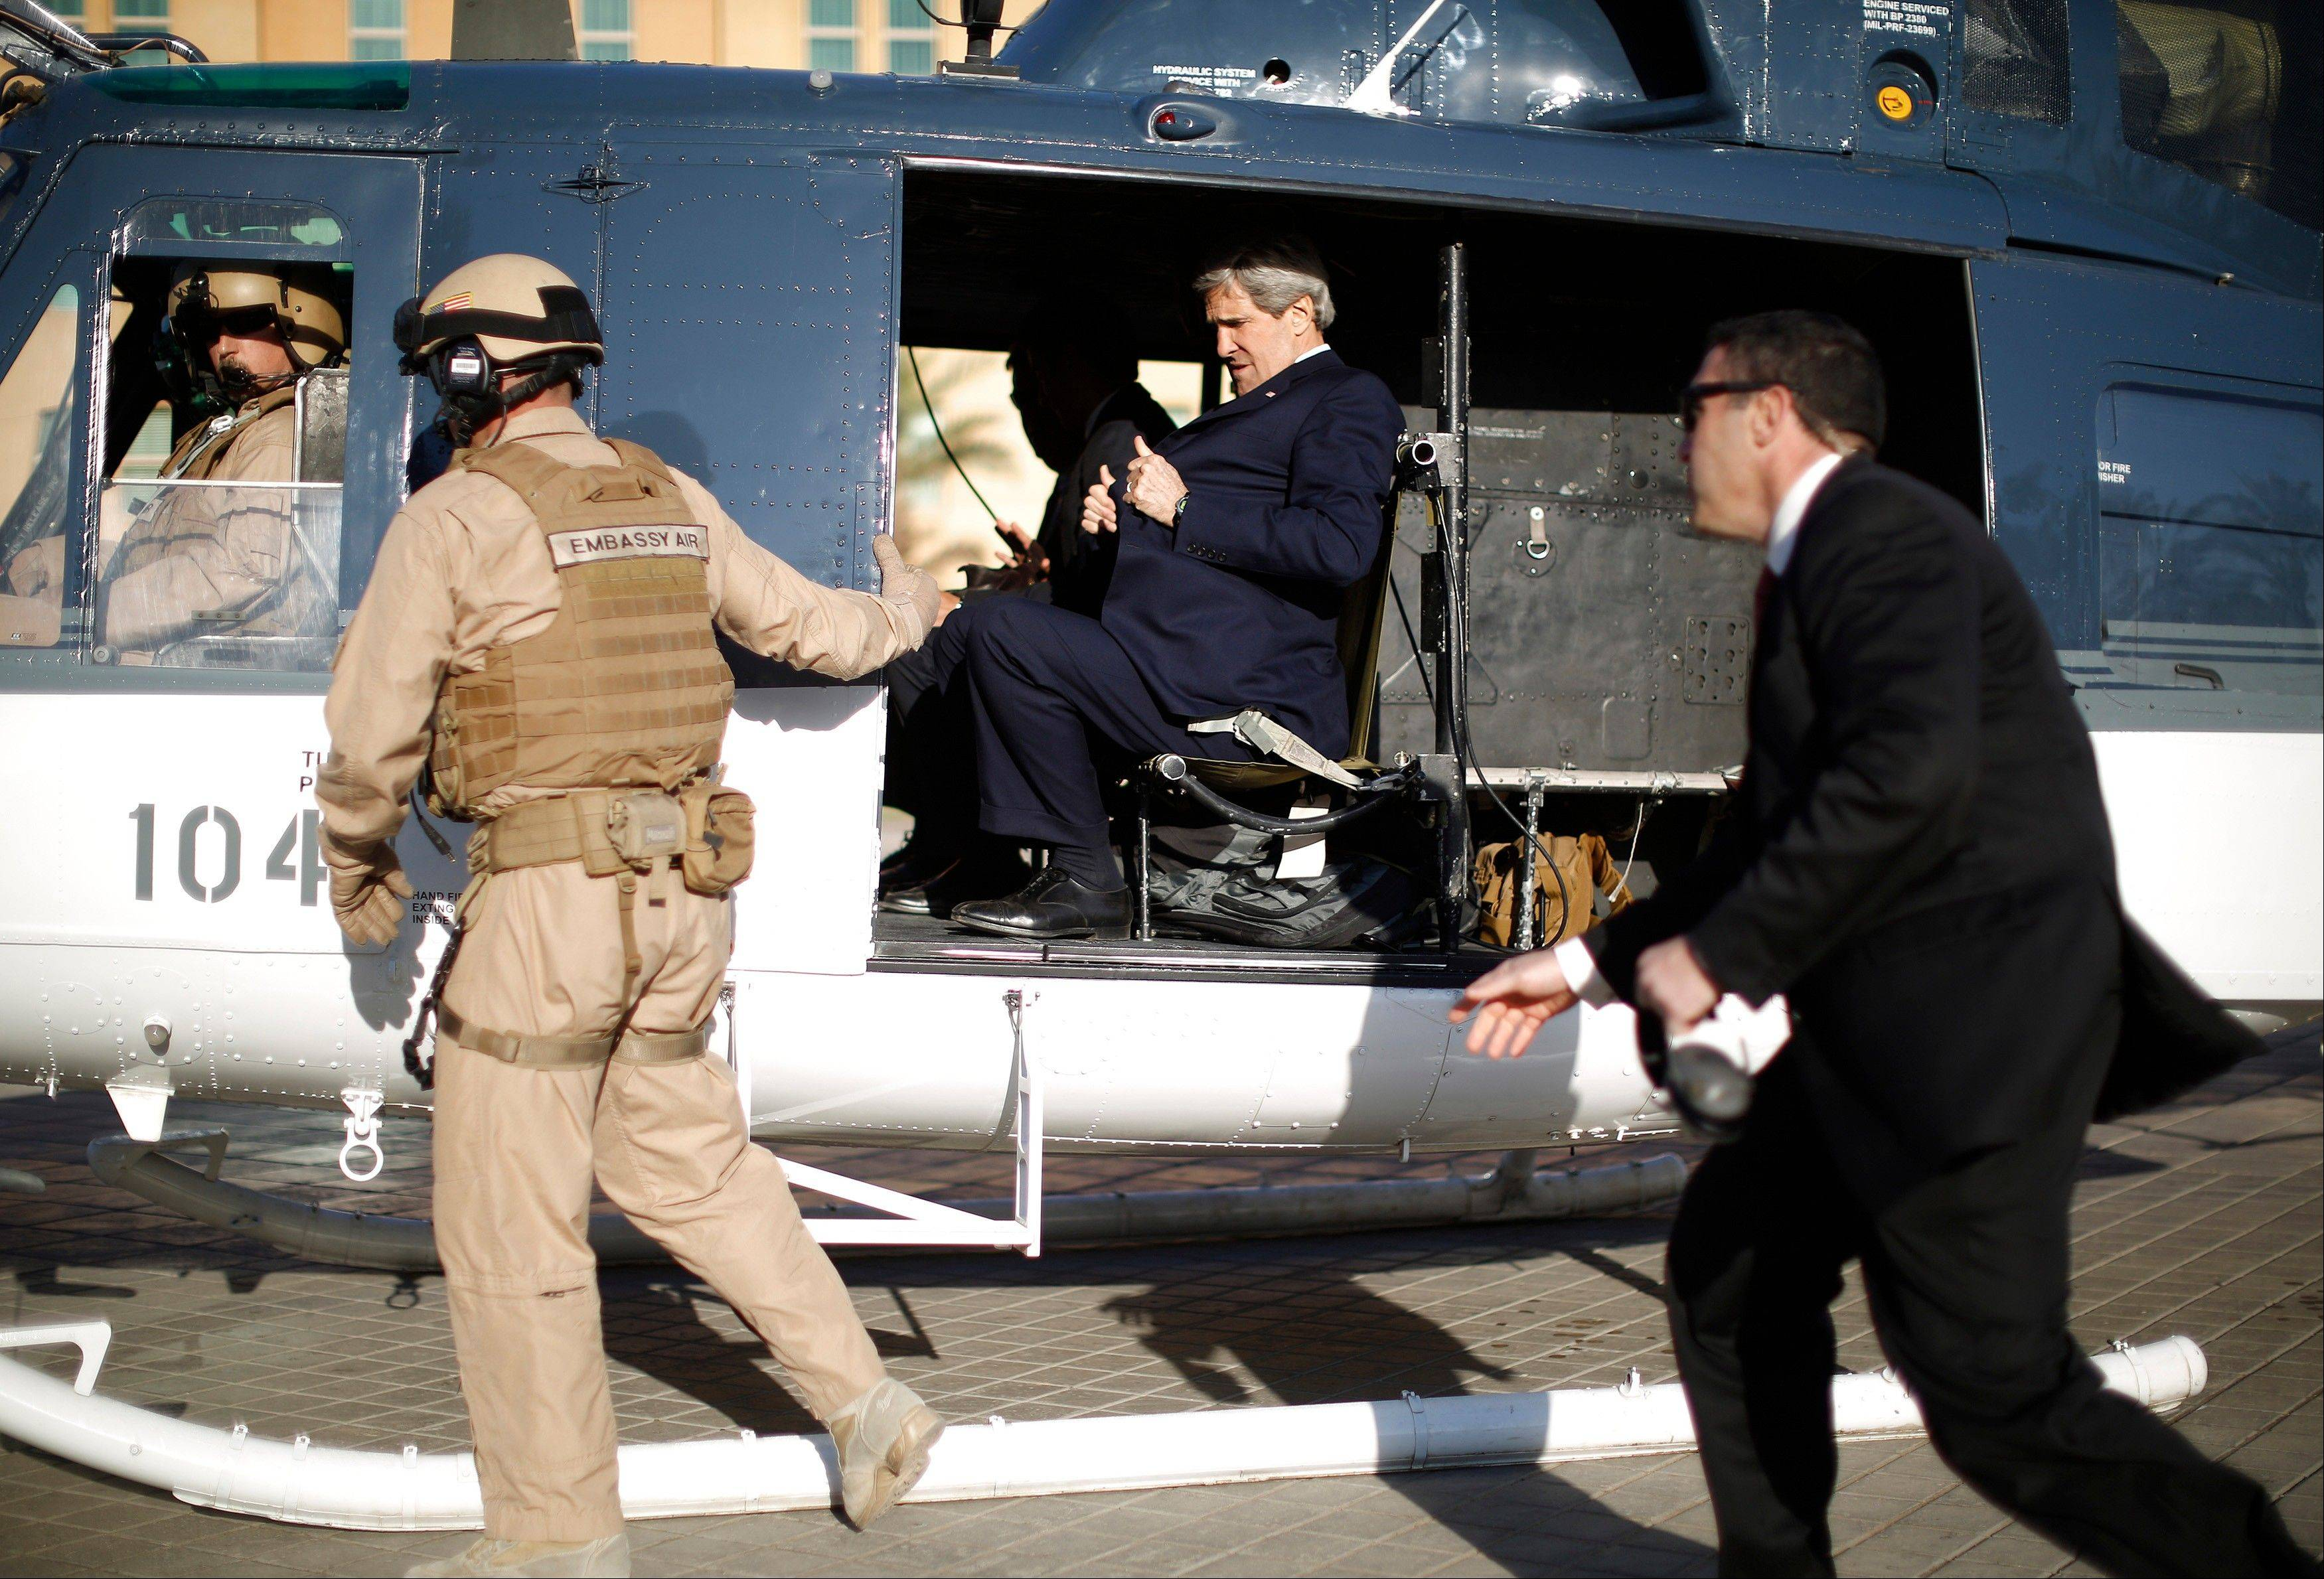 U.S. Secretary of State John Kerry straps himself into a helicopter as he prepares to fly out of the U.S. Embassy in Baghdad Sunday. Kerry went to Afghanistan Monday on an unannounced visit to meet with Afghan President Hamid Karzai.